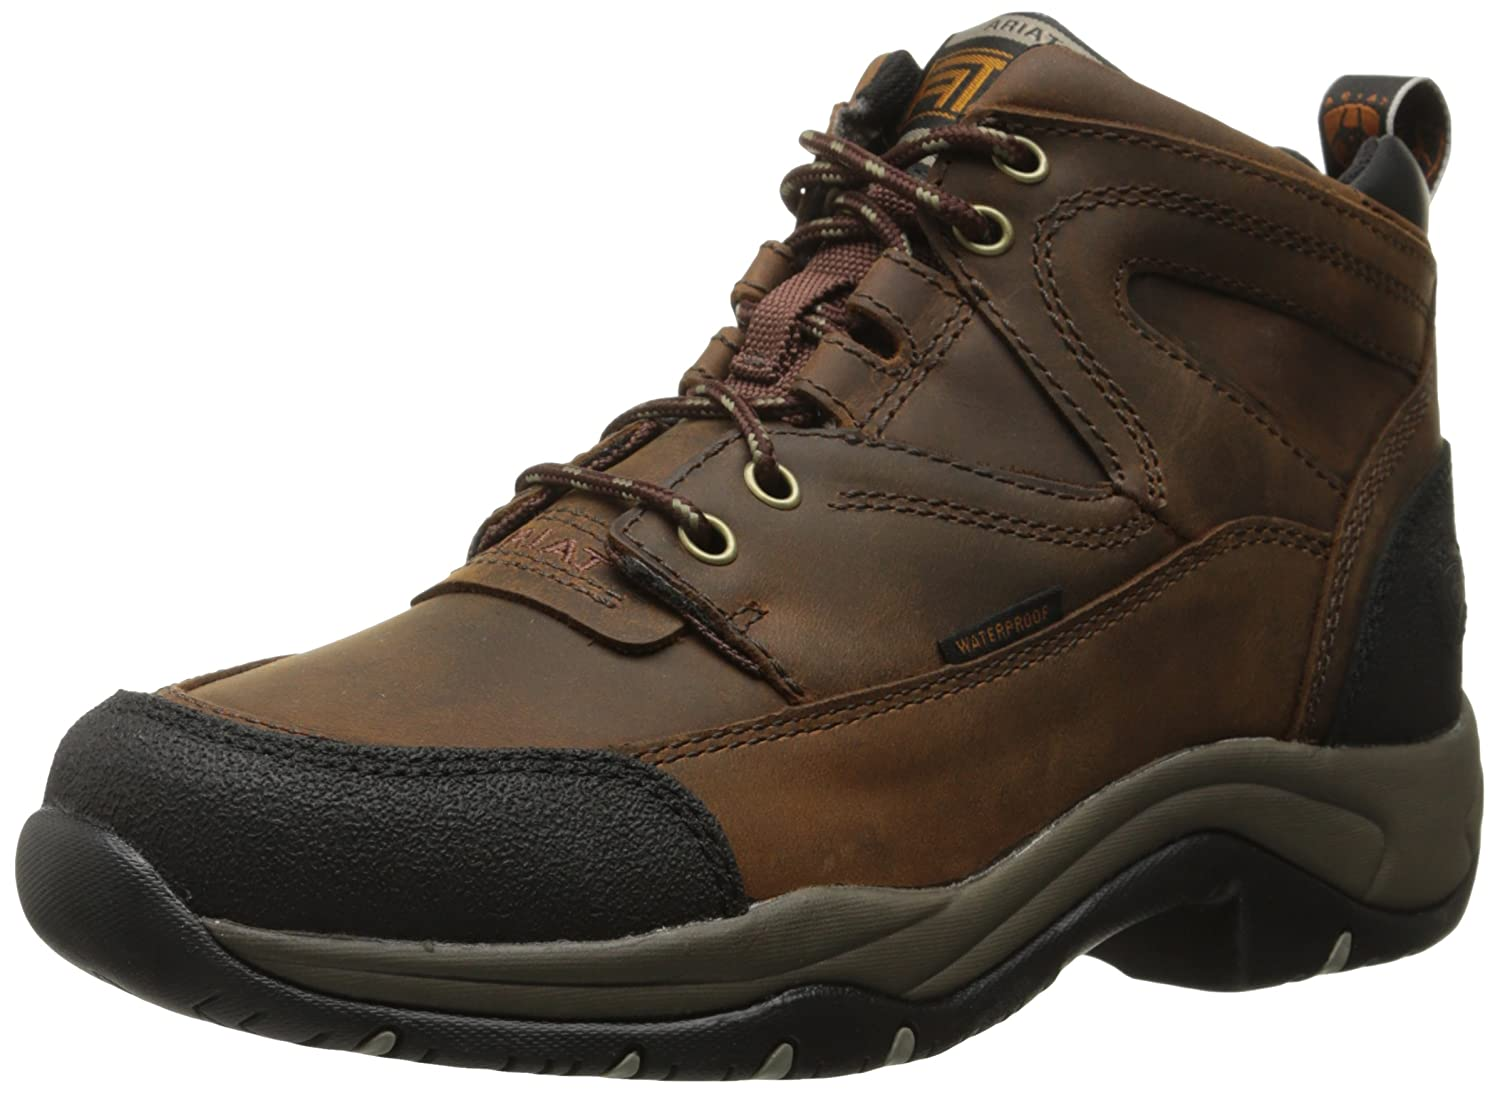 Copper Ariat Women's Terrain Hiking Boot